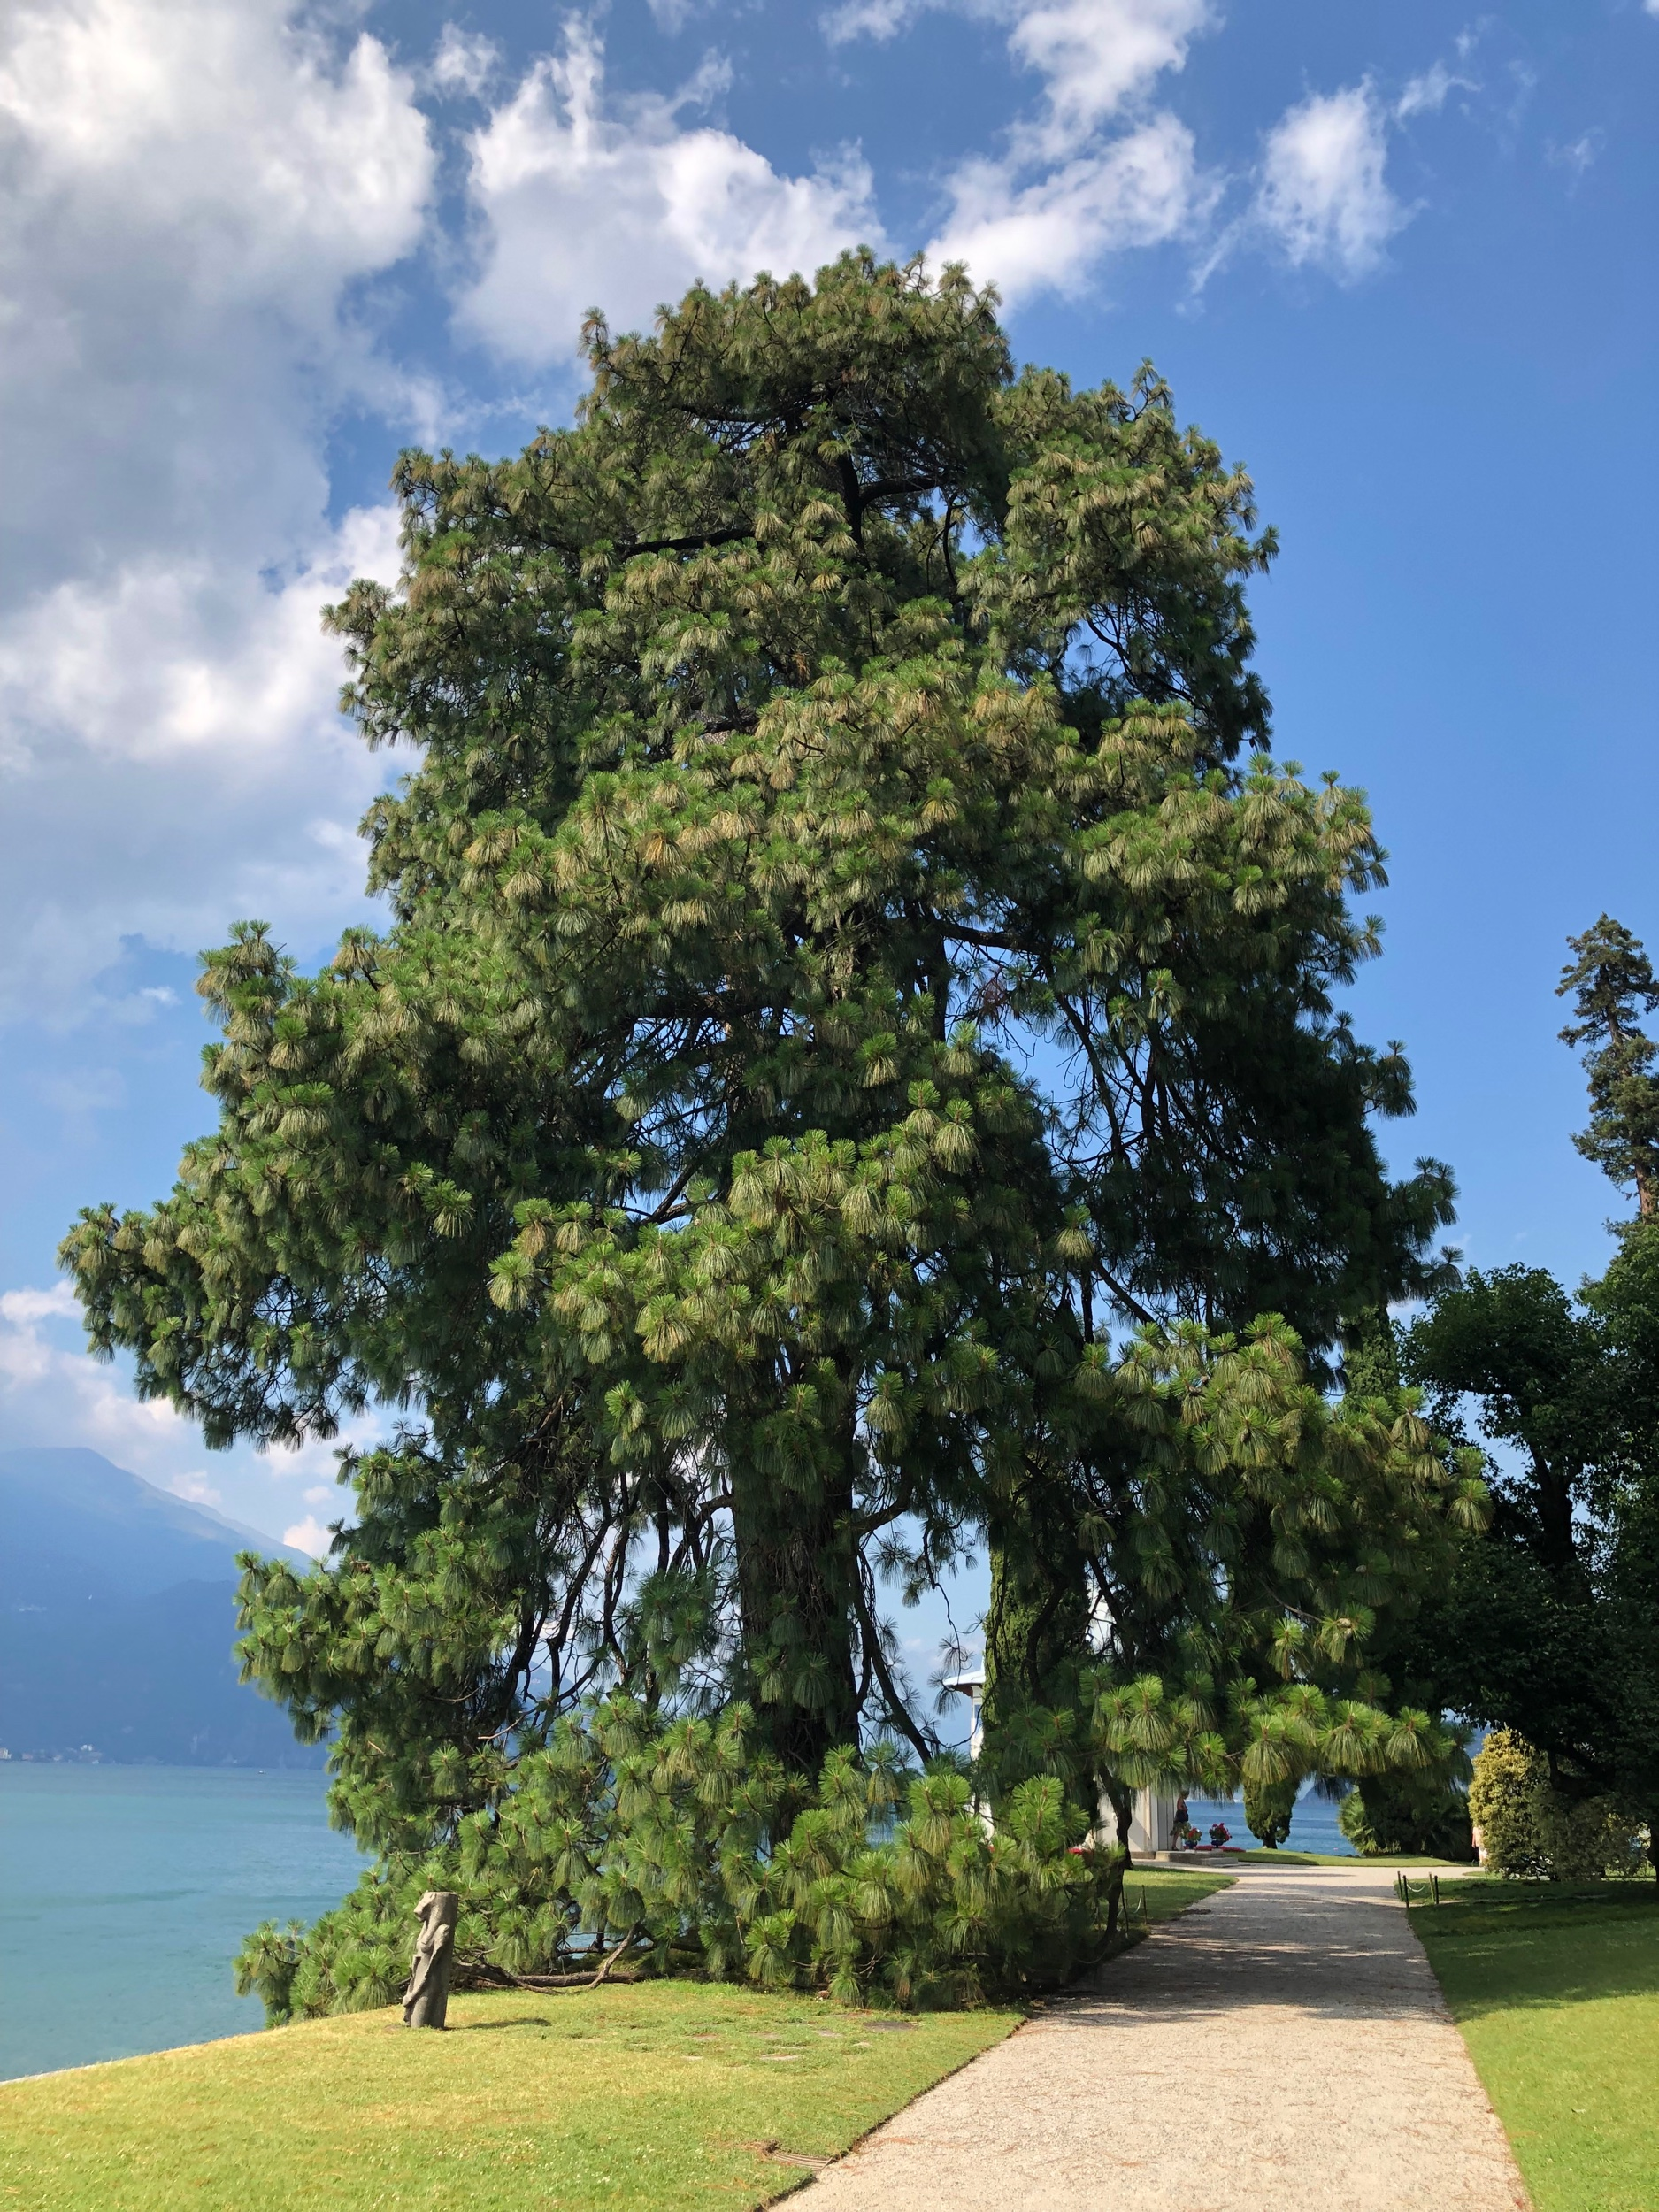 Pinus devoniana (native to Mexico-known as Pino blanco there)